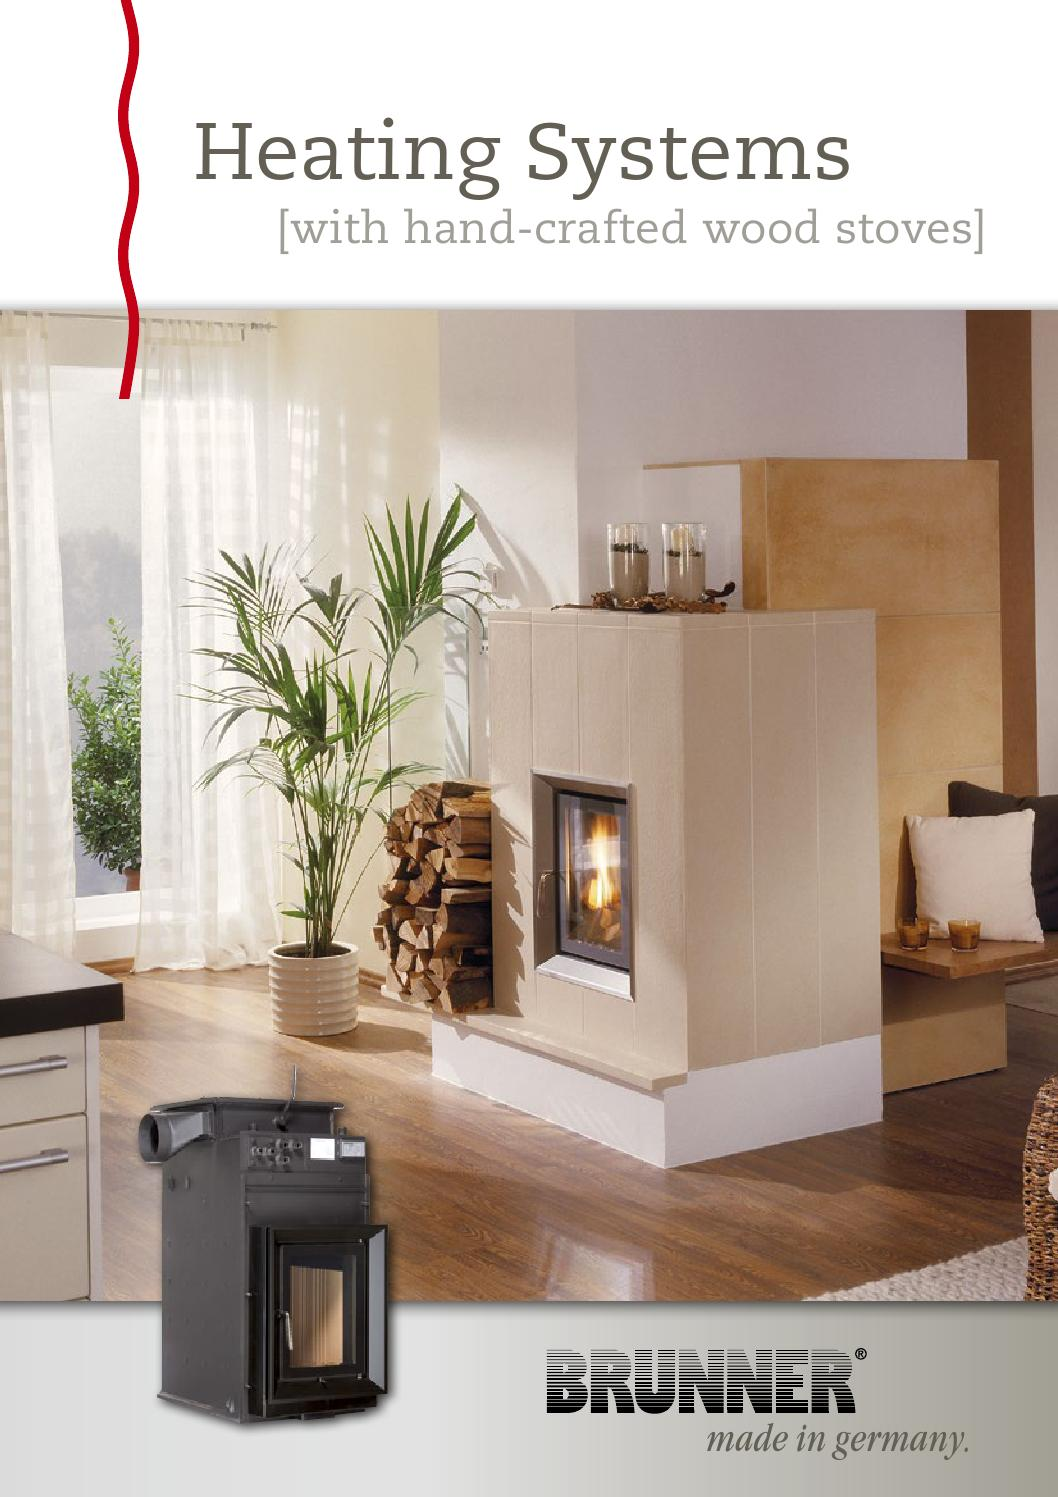 Brunner Kamin Kessel Brunner Heating Systems En By Evanto Media Ag Issuu